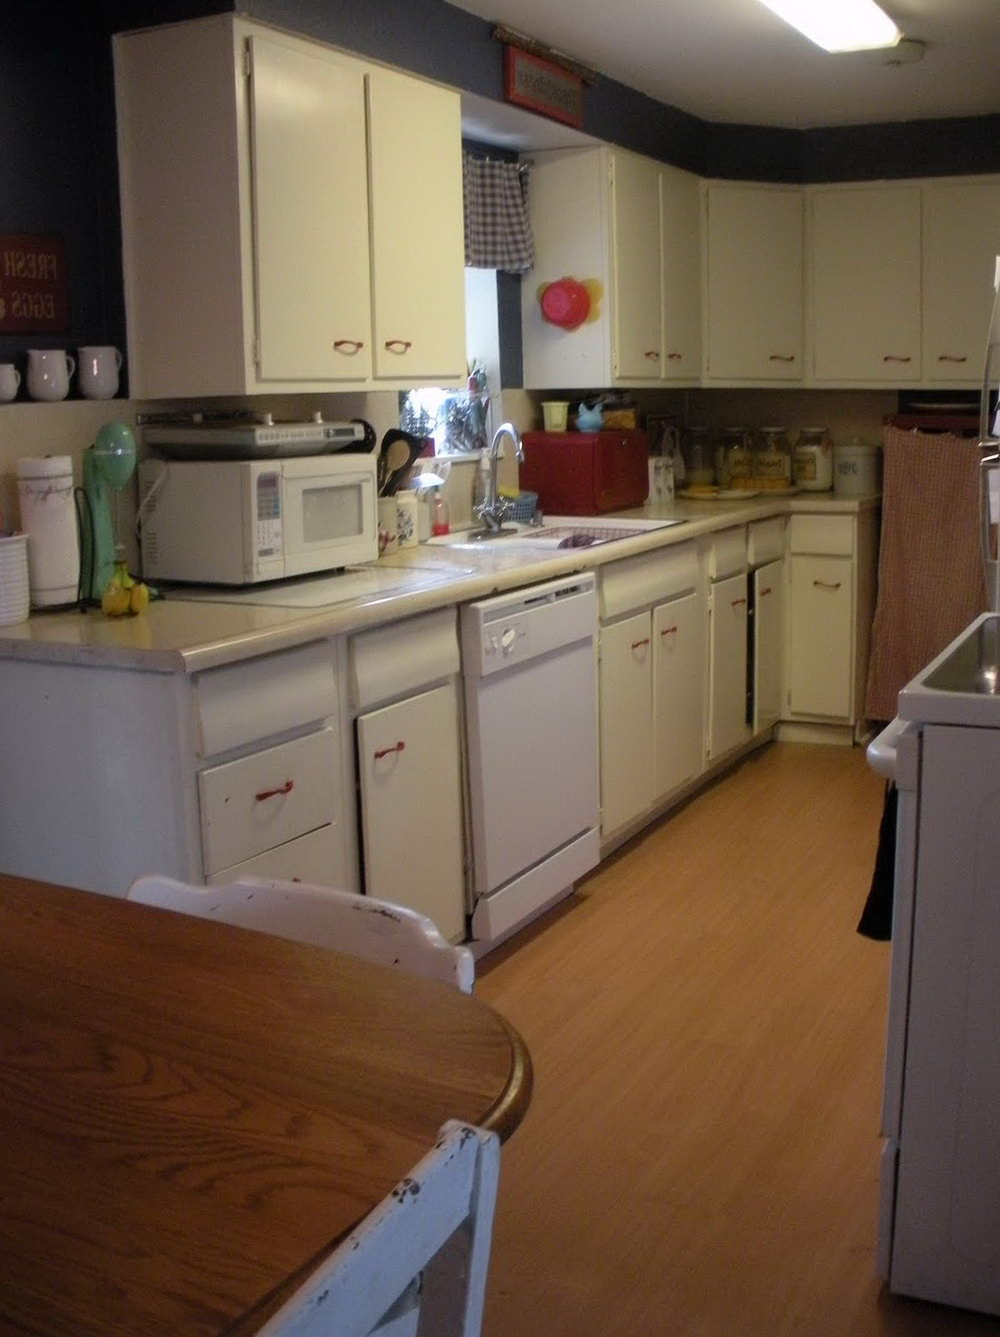 How To Fix Kitchen Cabinets That Won't Stay Closed